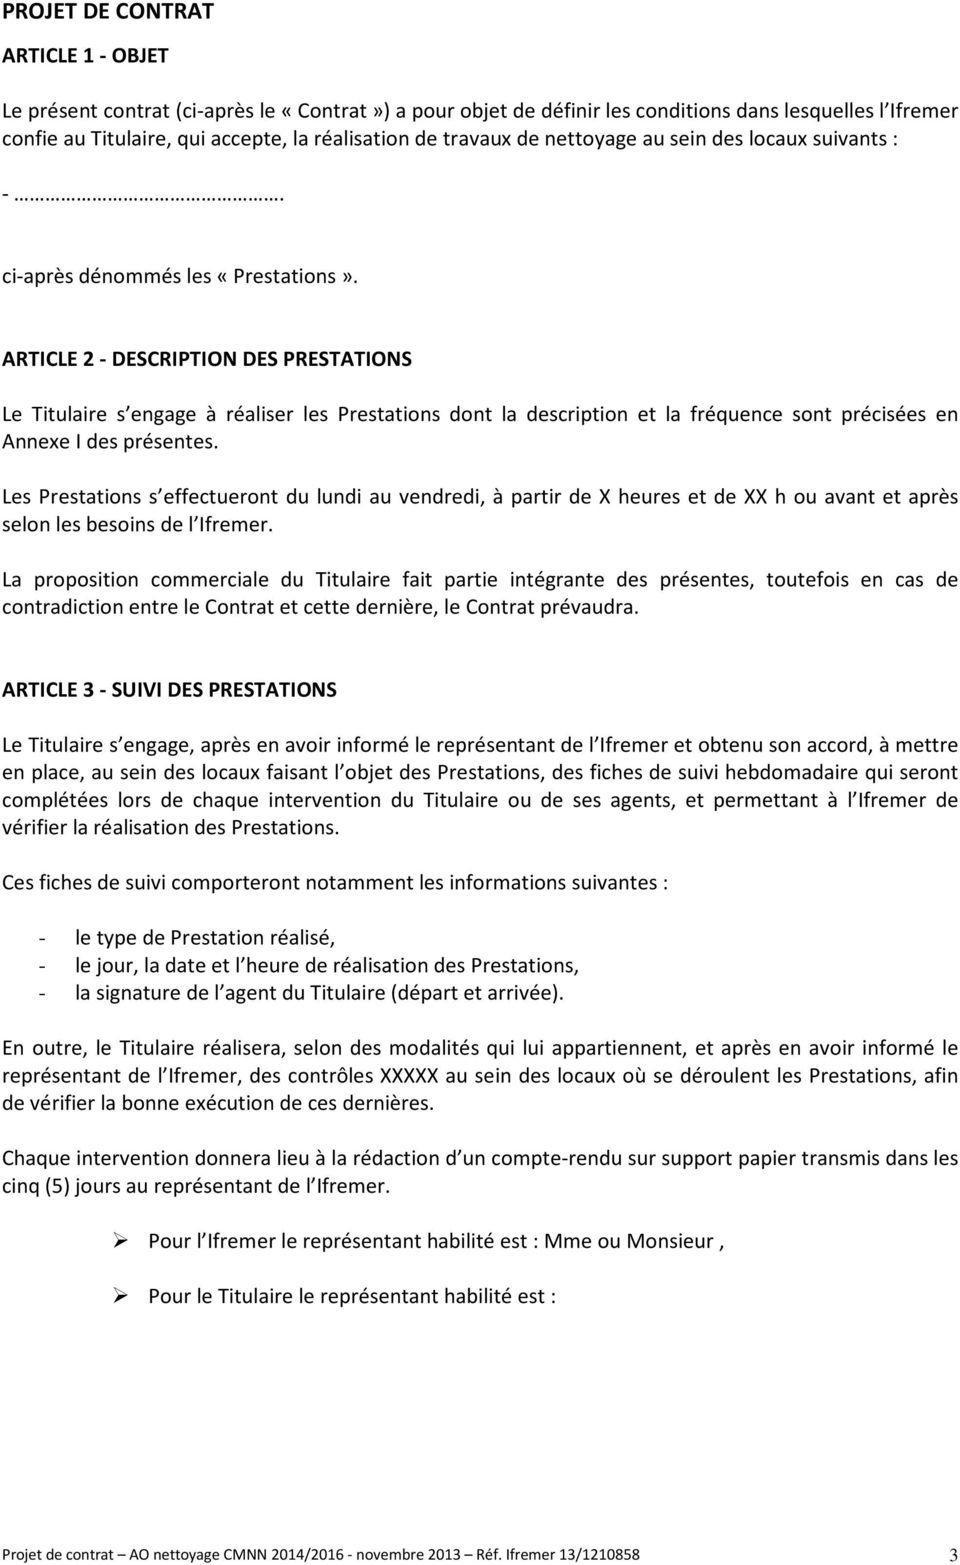 ARTICLE 2 - DESCRIPTION DES PRESTATIONS Le Titulaire s engage à réaliser les Prestations dont la description et la fréquence sont précisées en Annexe I des présentes.